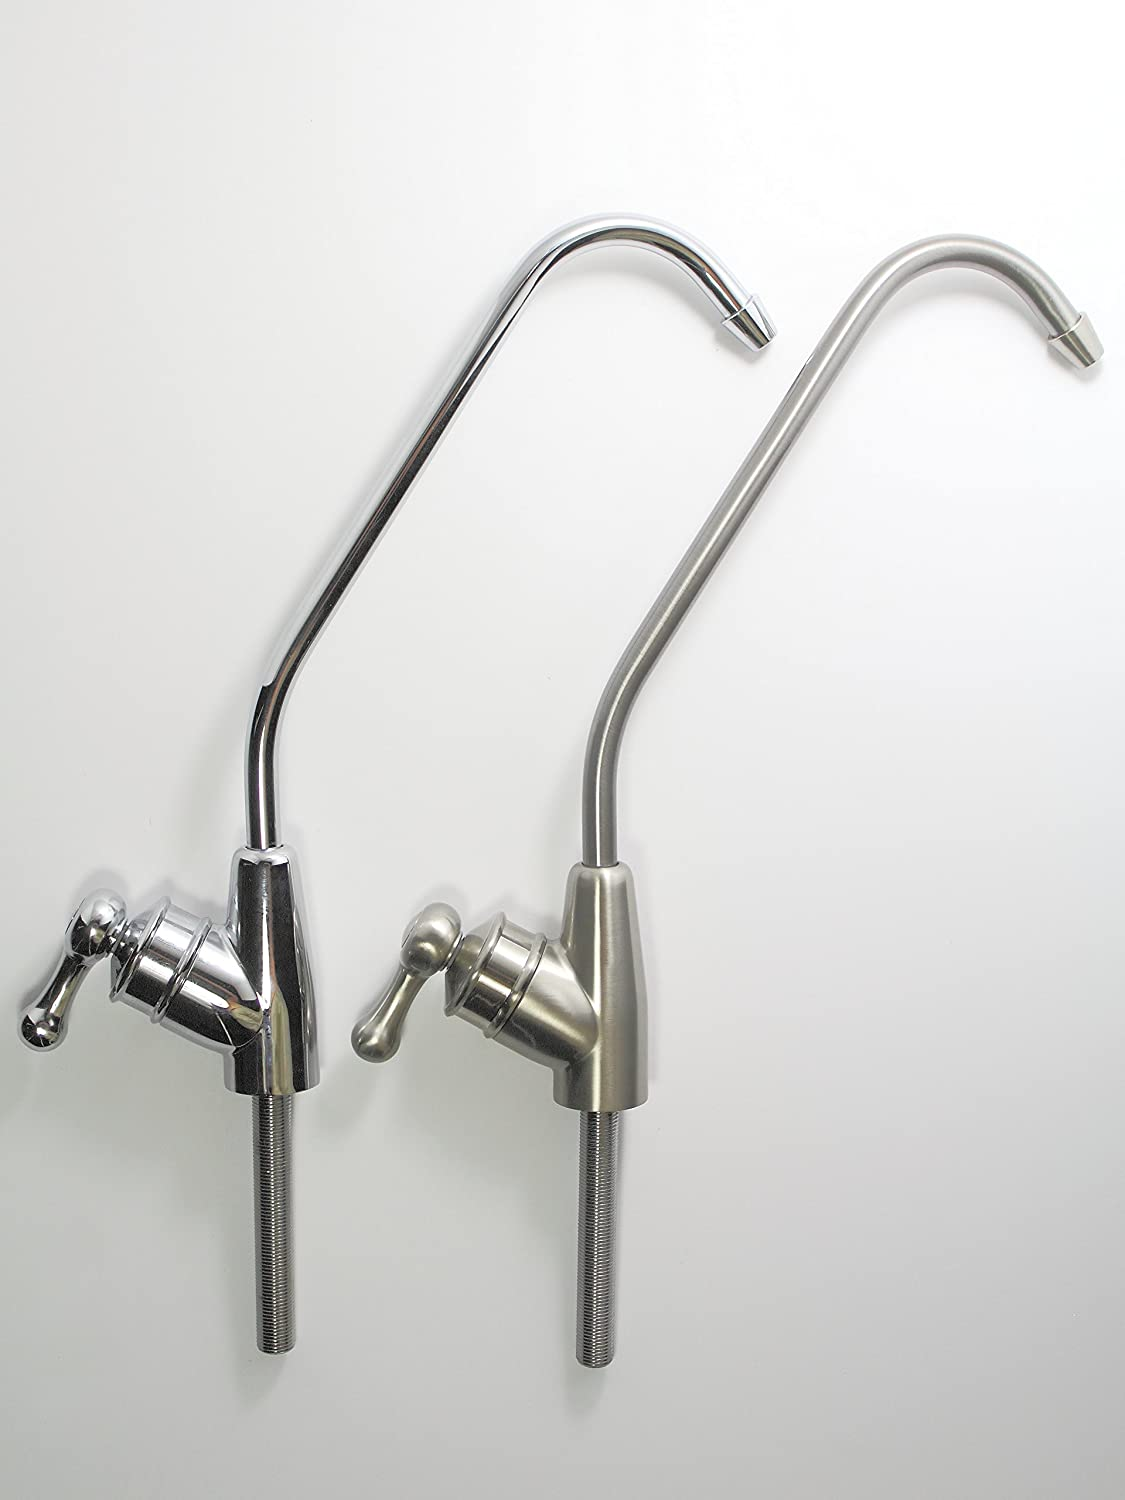 Amazon.com: Kitchen Faucets from Todays Water Solutions for Alkaline ...